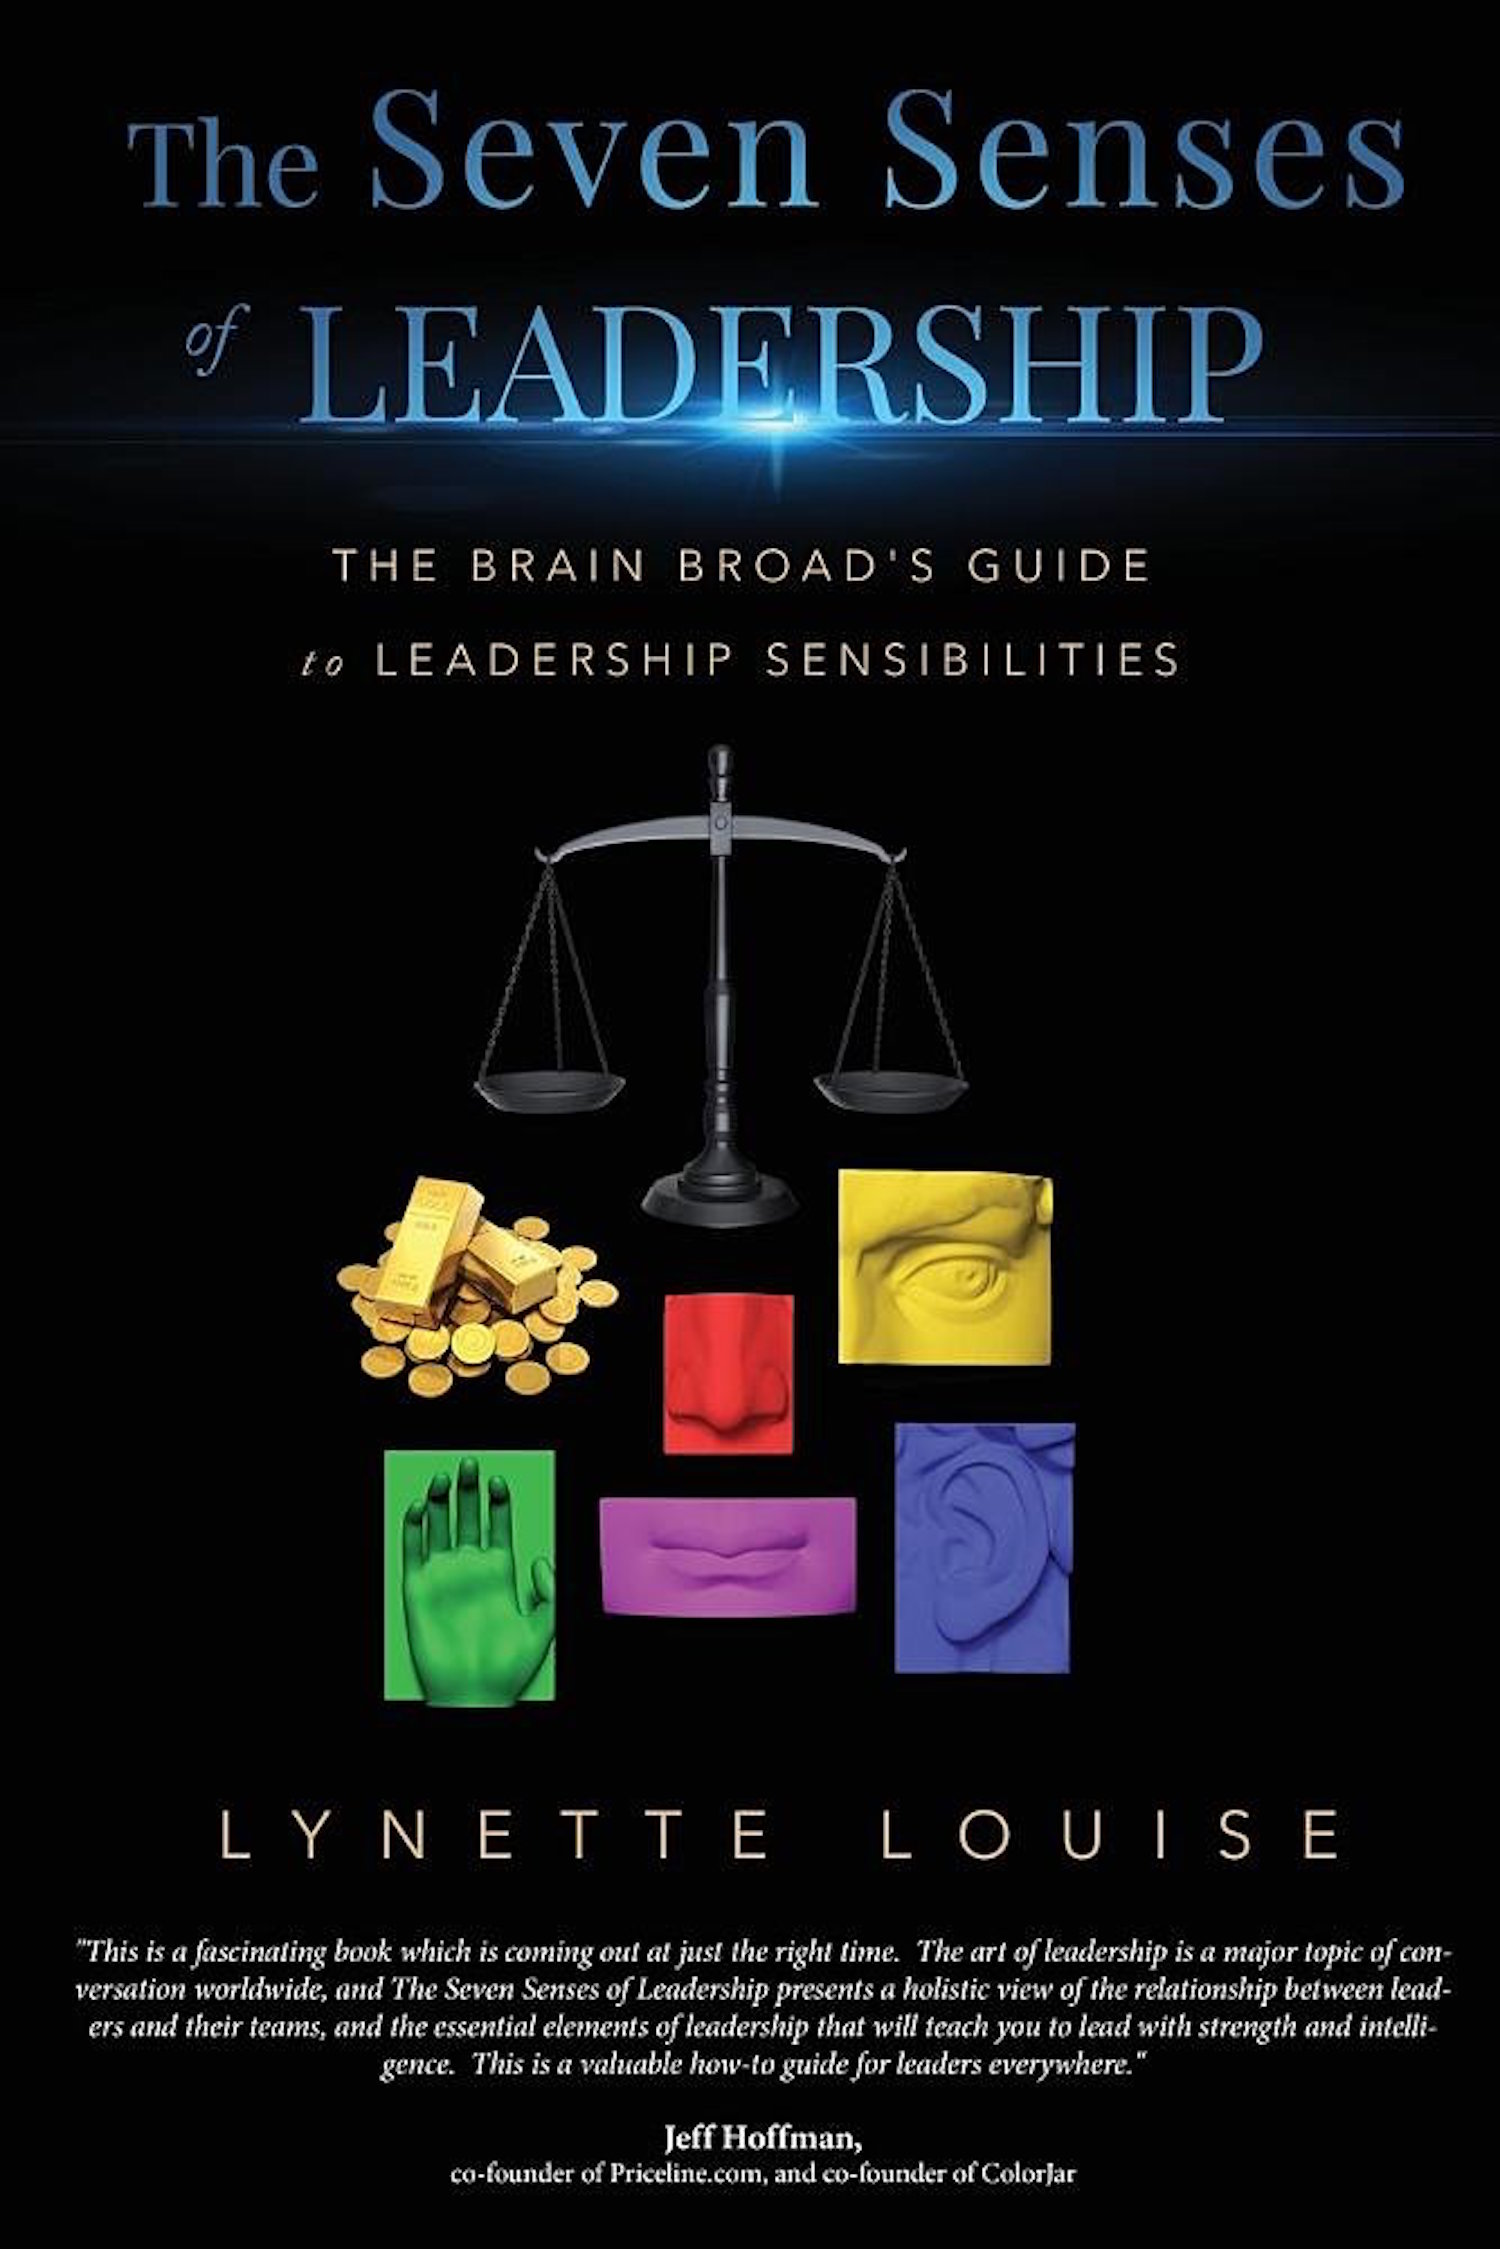 The Seven Senses of Leadership